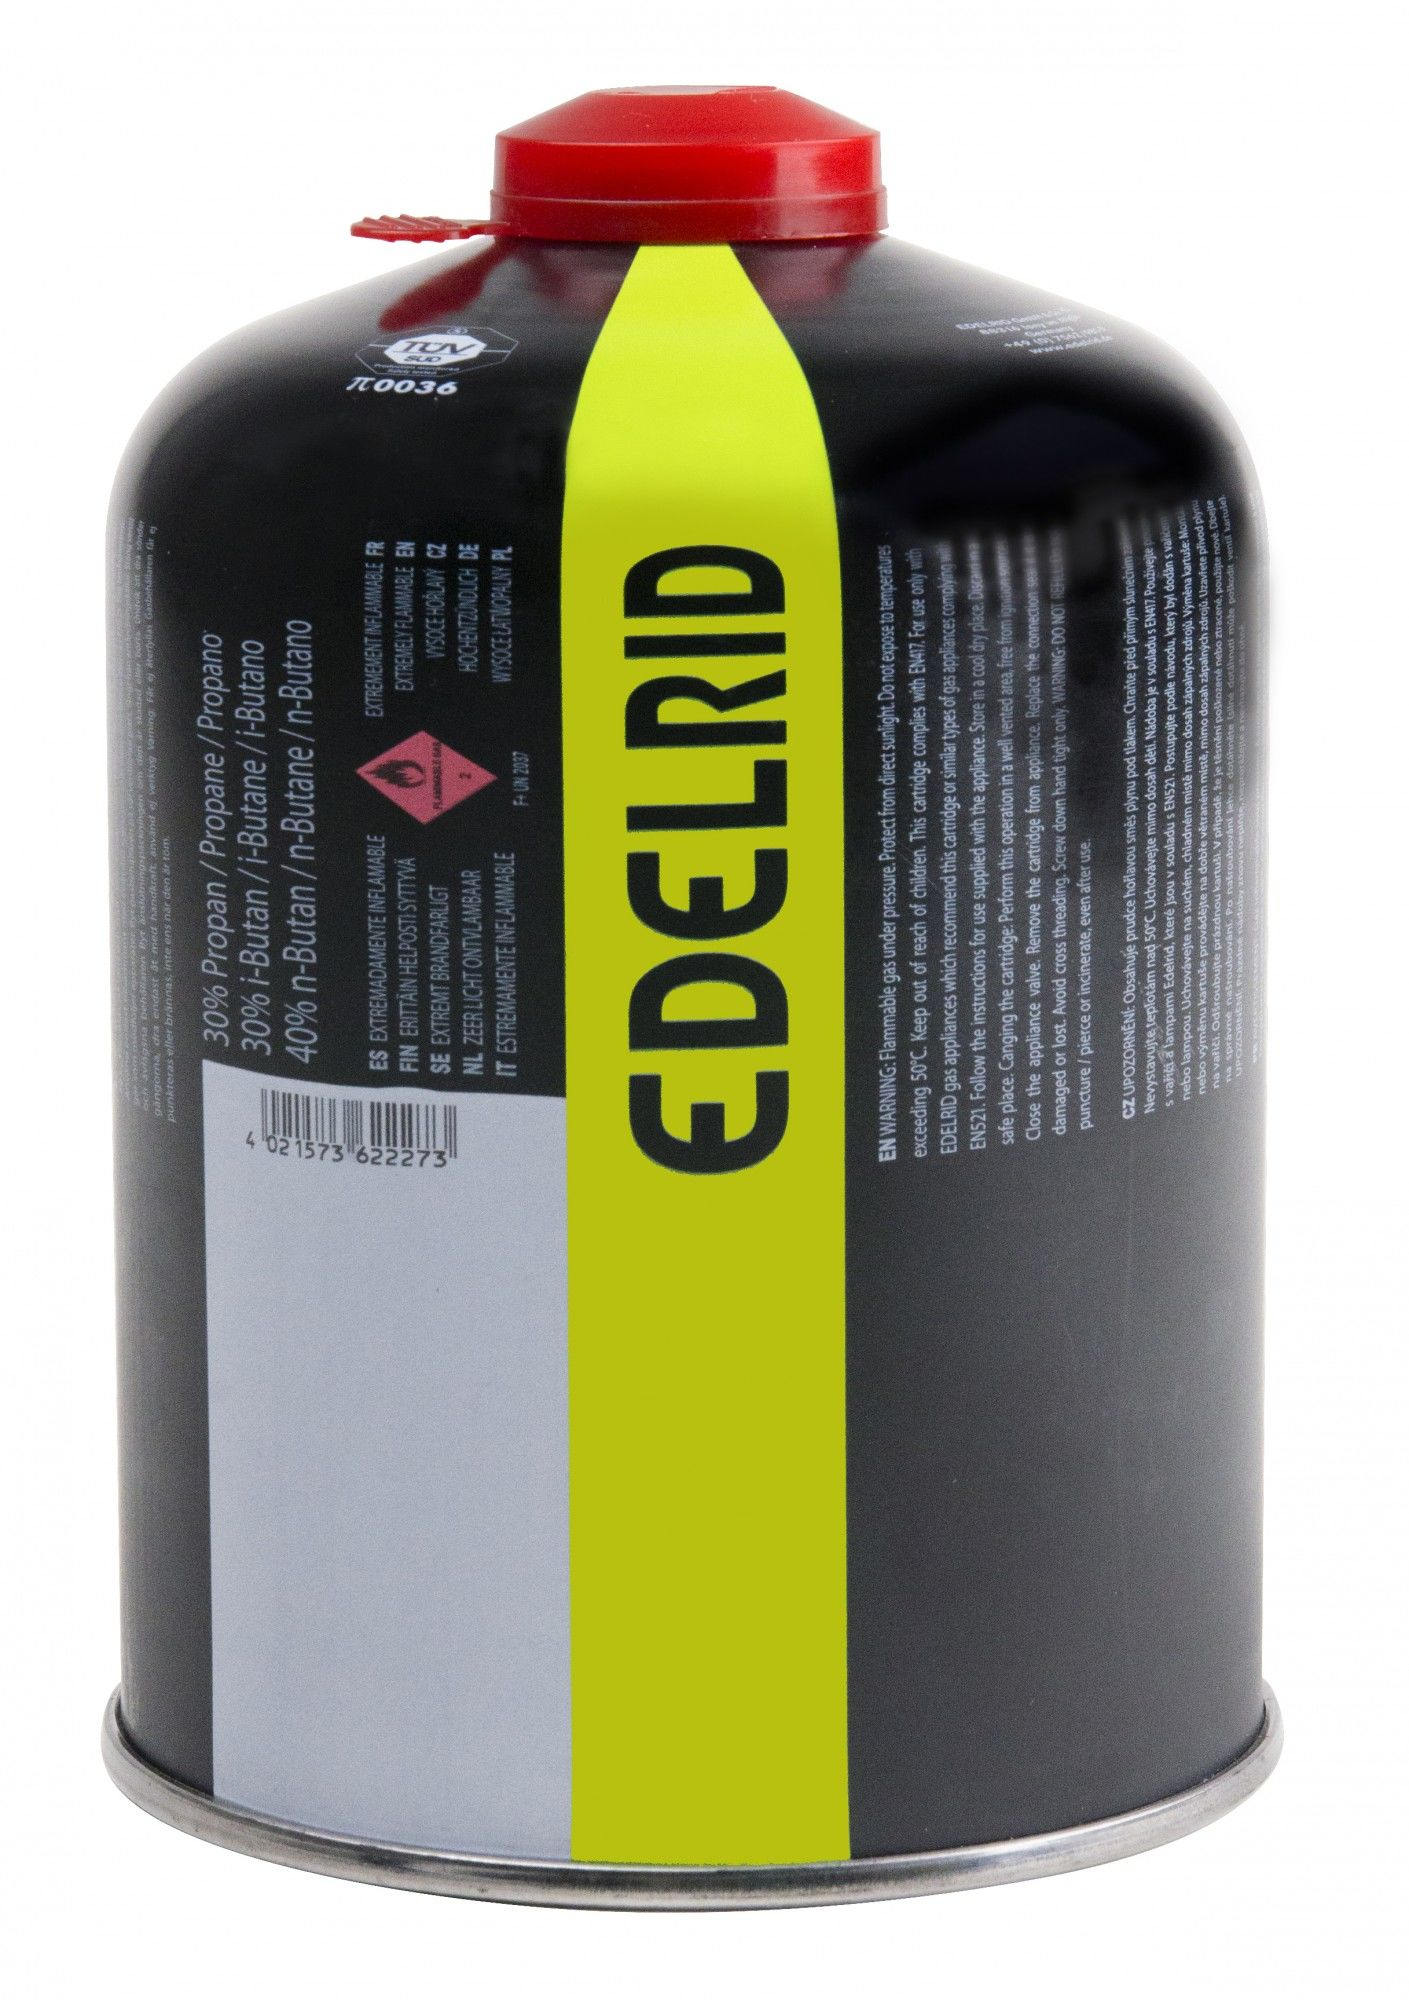 Edelrid Outdoor GAS 450 Schwarz, One Size -Farbe Black, One Size